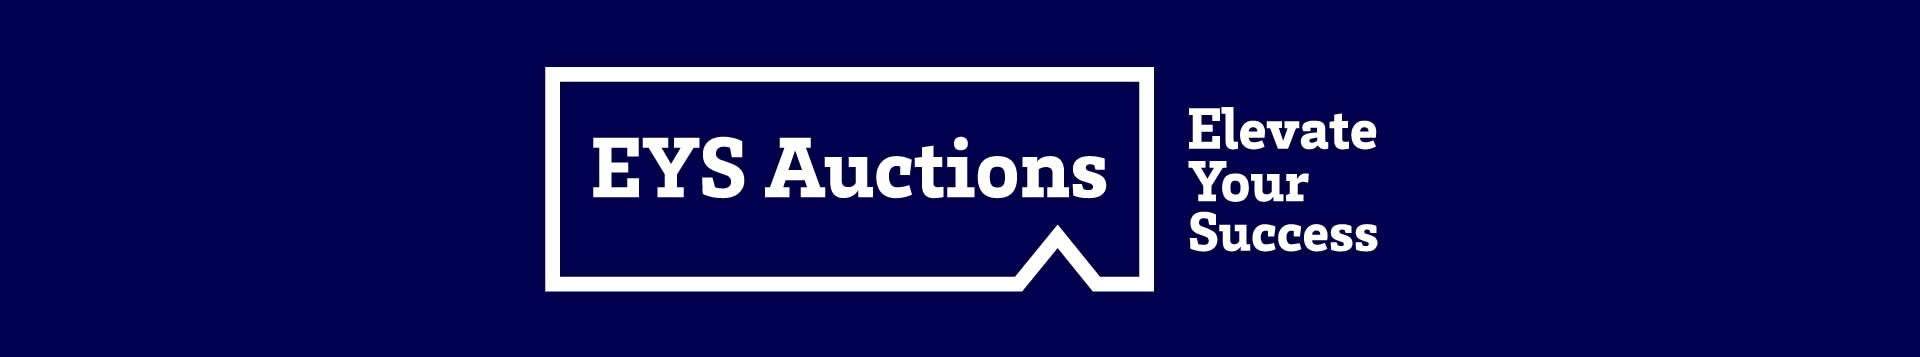 MAXIMISE AUCTION RESULTS THROUGH TECHNOLOGY